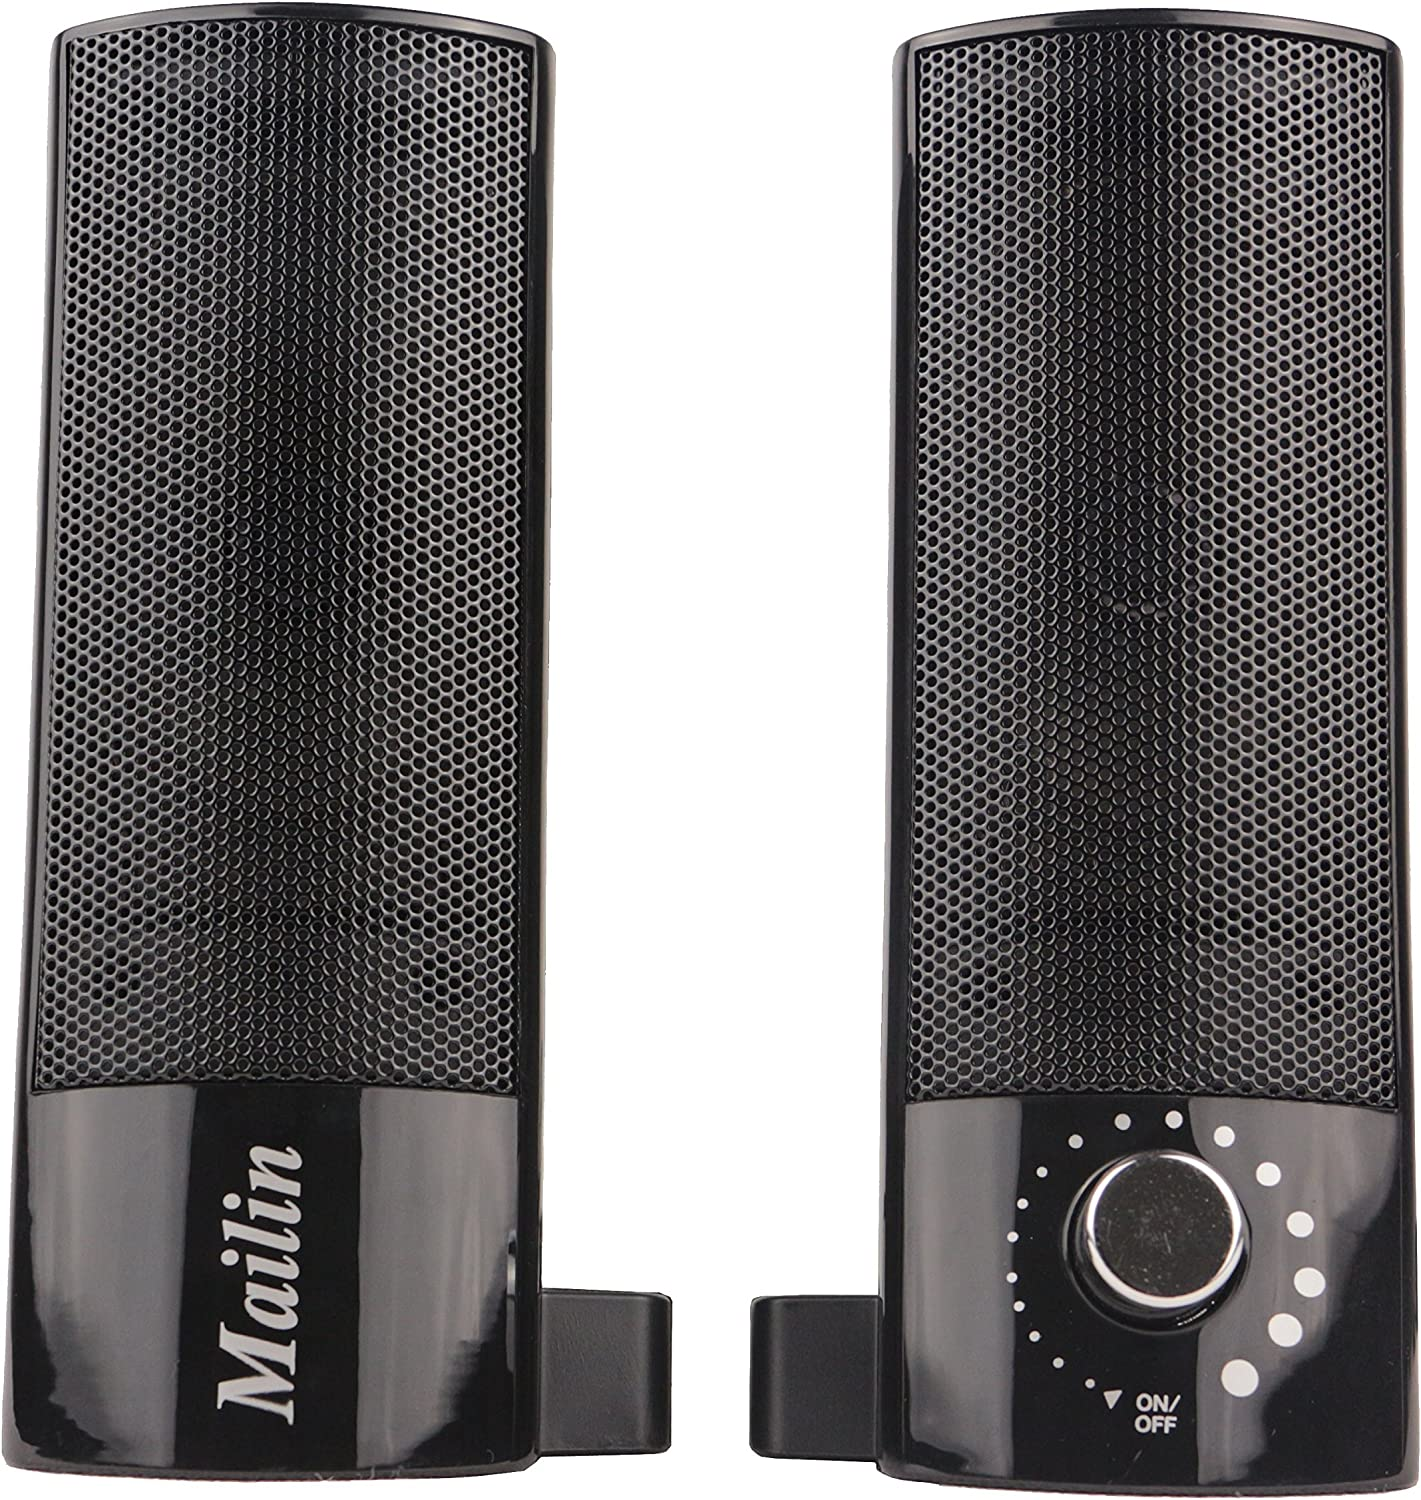 Mailin Detachable Computer Speaker, PC Speaker, Laptop Speaker, USB Power Supply 3.5mm Stereo Input, 5 Watts RMS Total Power with Volume Control (Black)